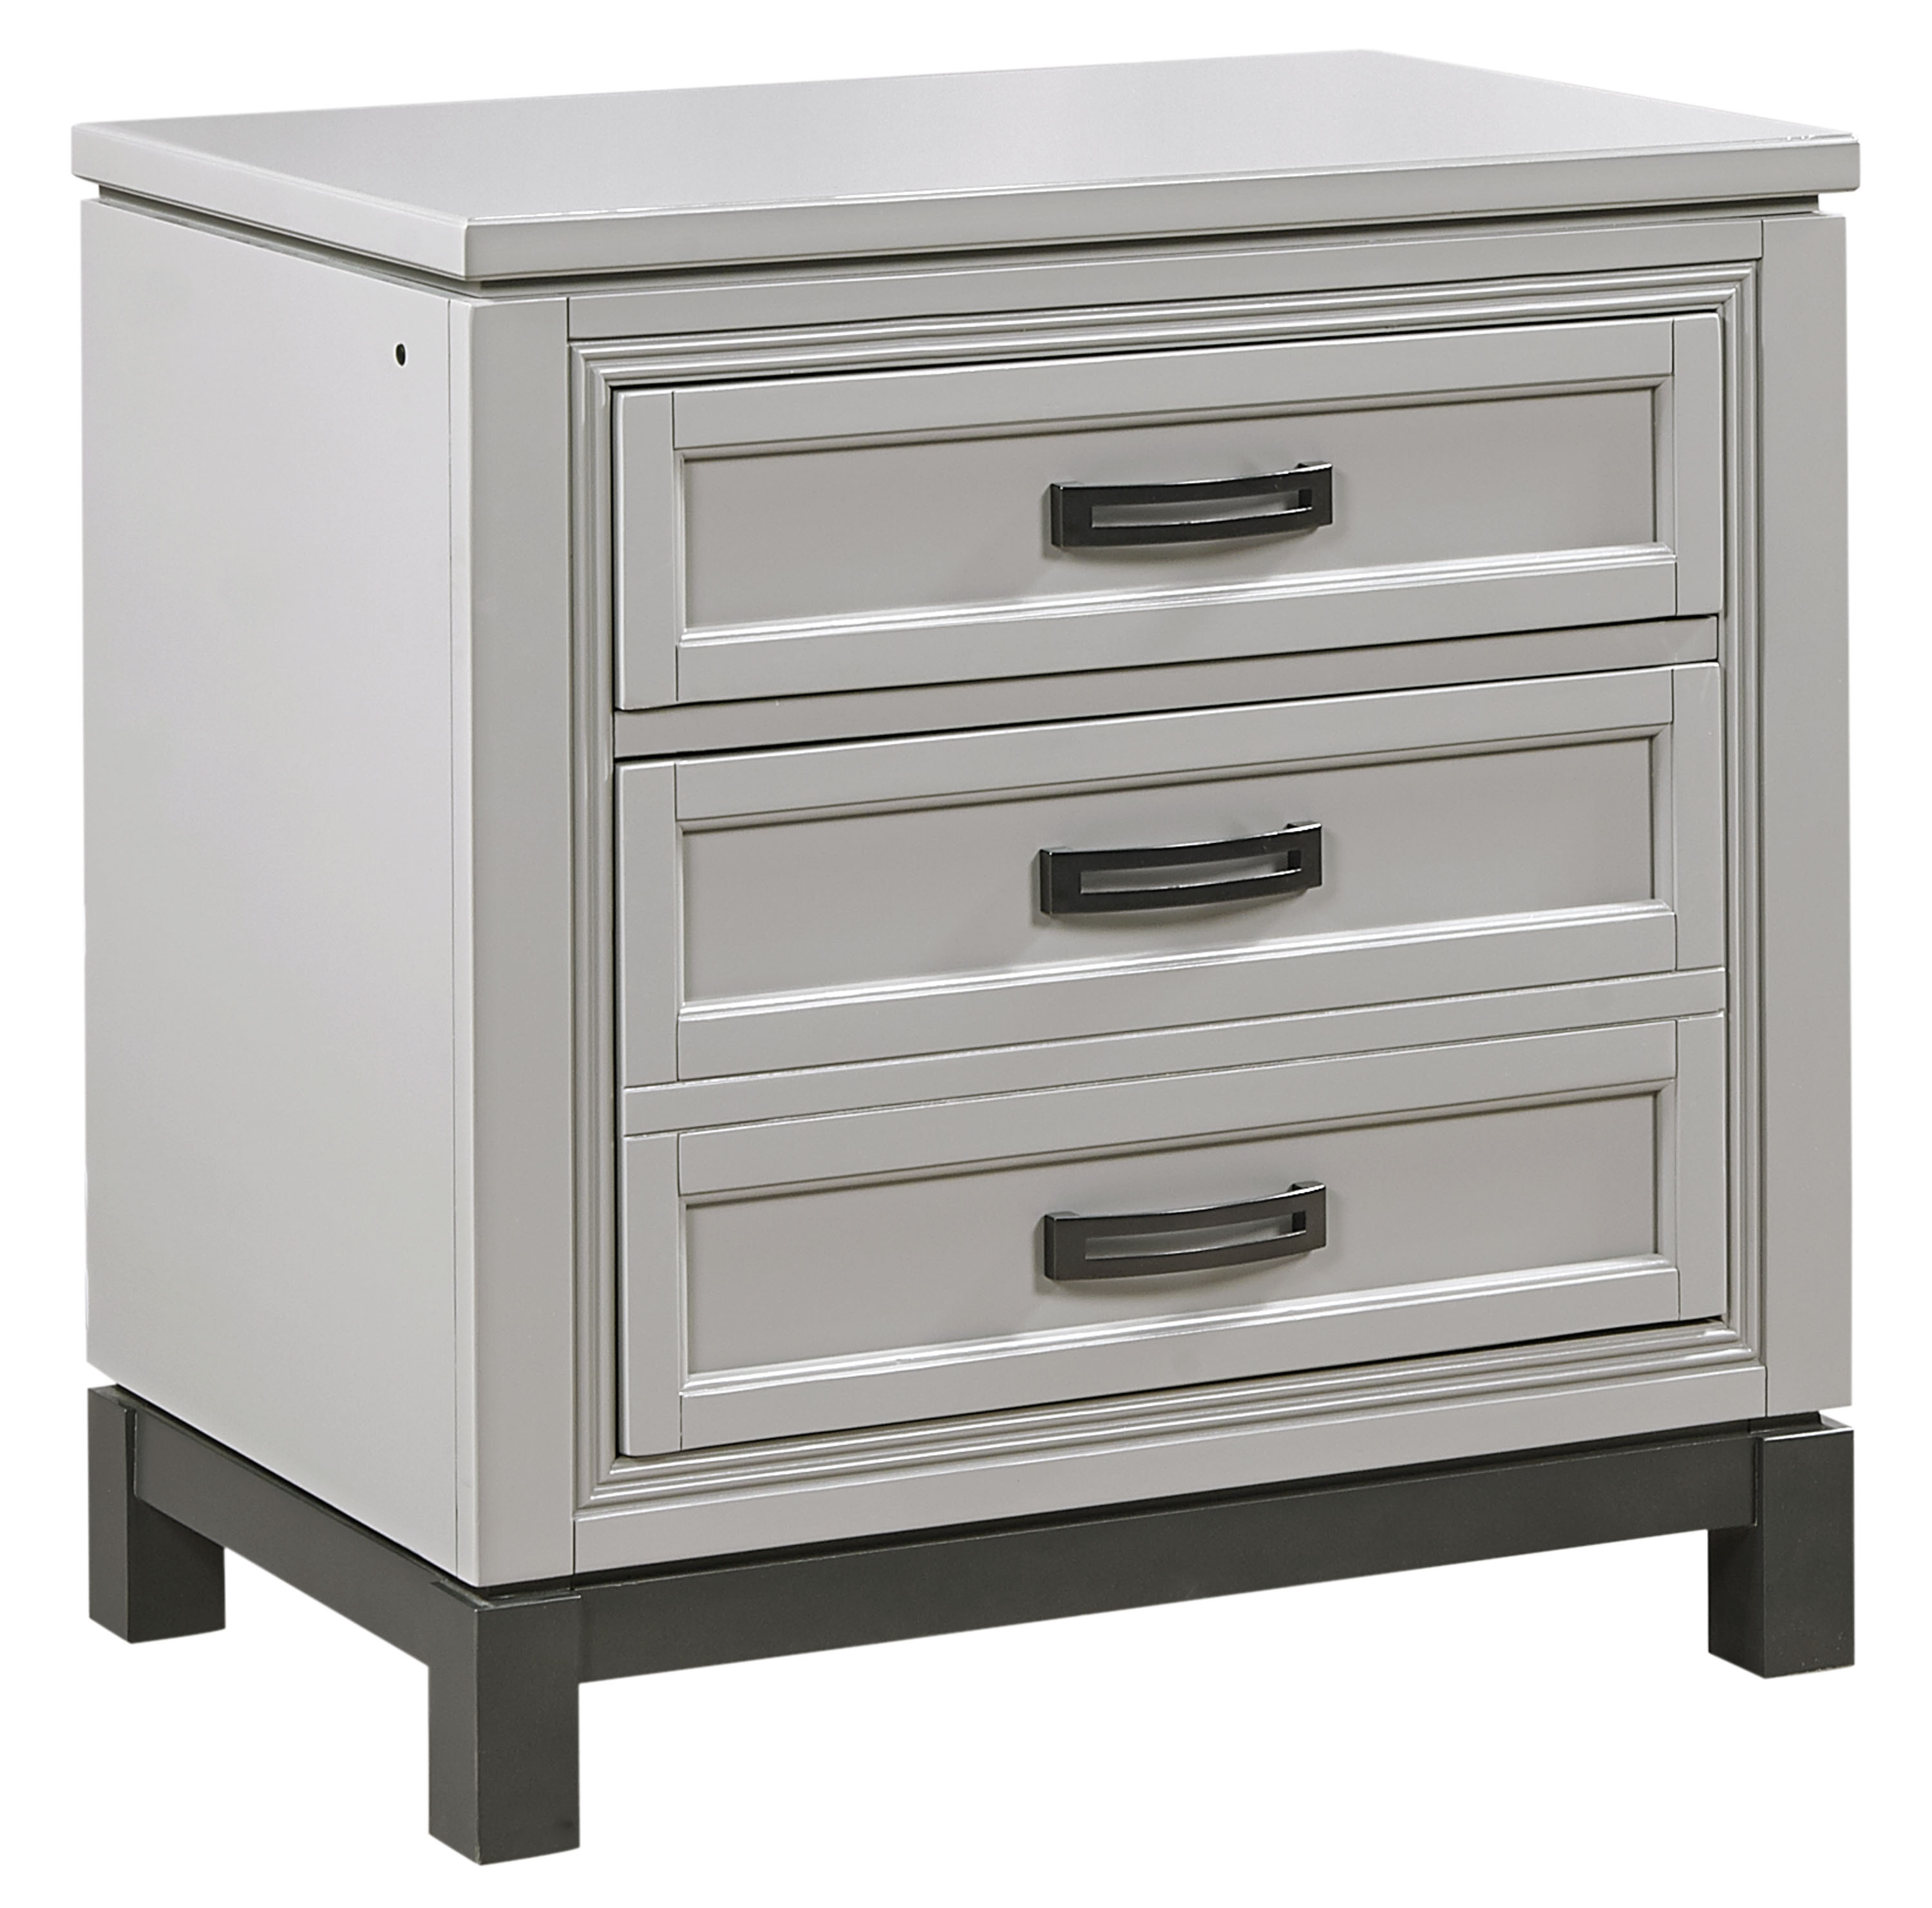 Hyde Park Liv.360 Nightstand  by Aspenhome at Baer's Furniture